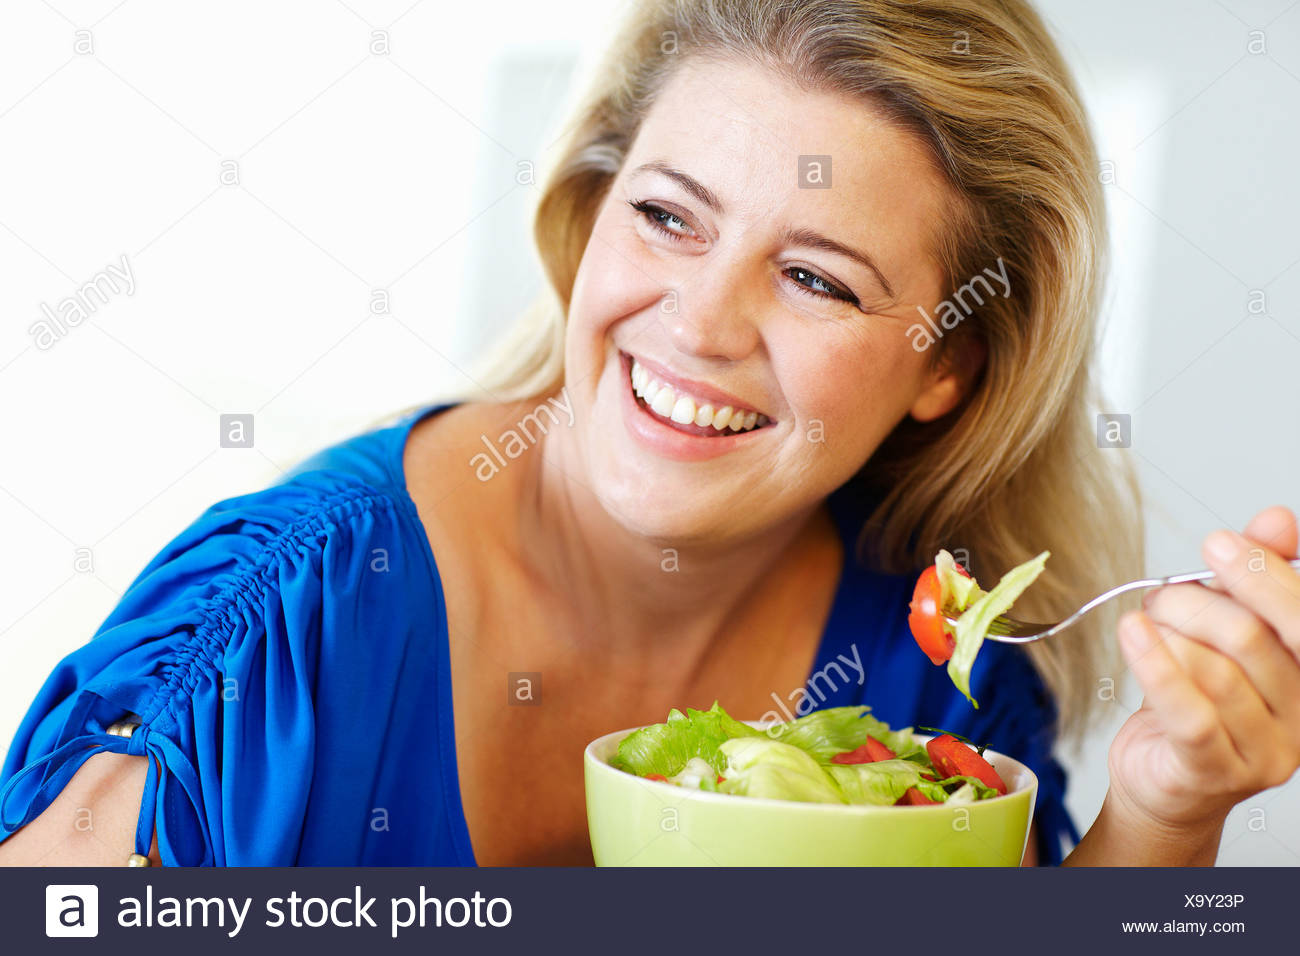 Smiling woman eating salad at table Photo Stock